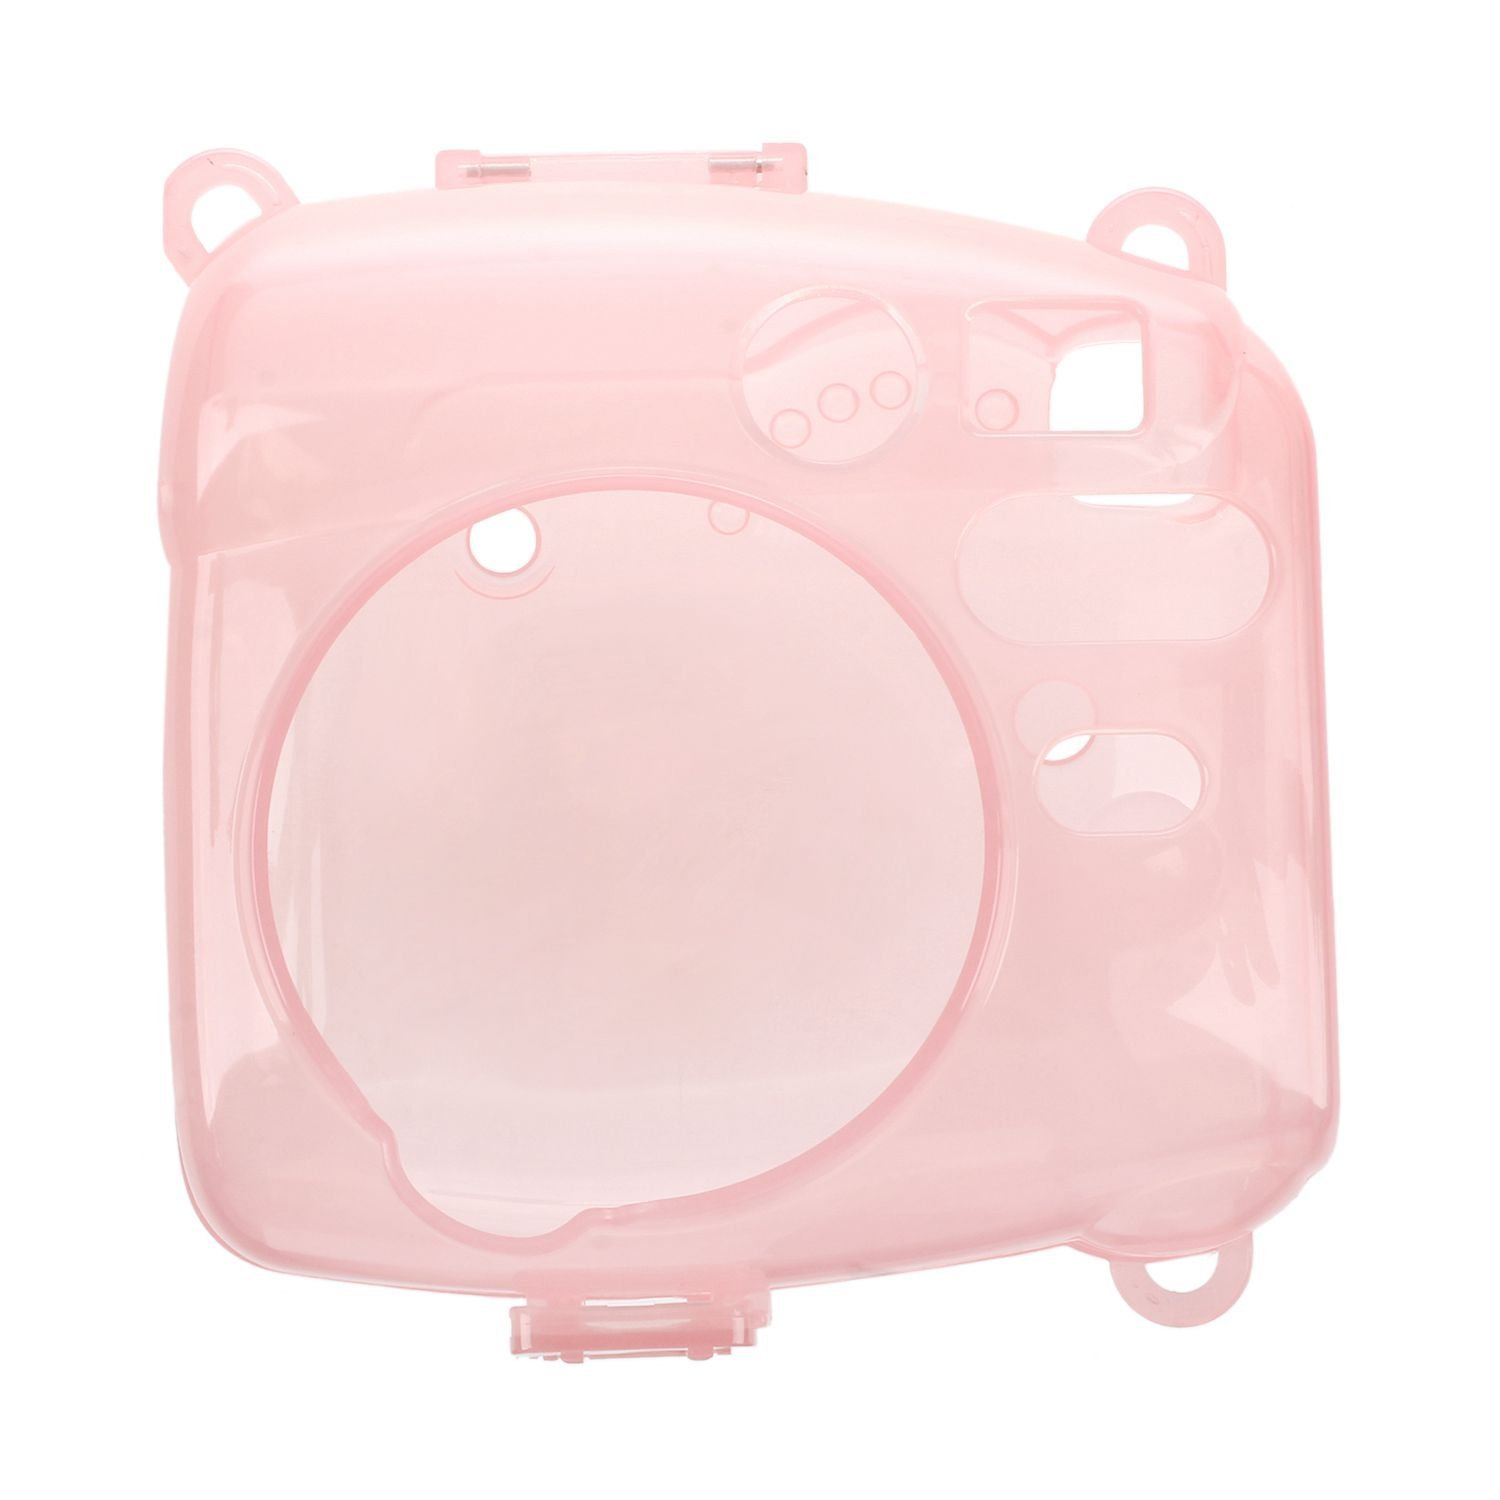 SODIAL(R) For fujifilm instax mini 8 case cover Pu the leader camera to protect Case Cover Hard Case Camera Shoulder bag Insert Case(Pink)